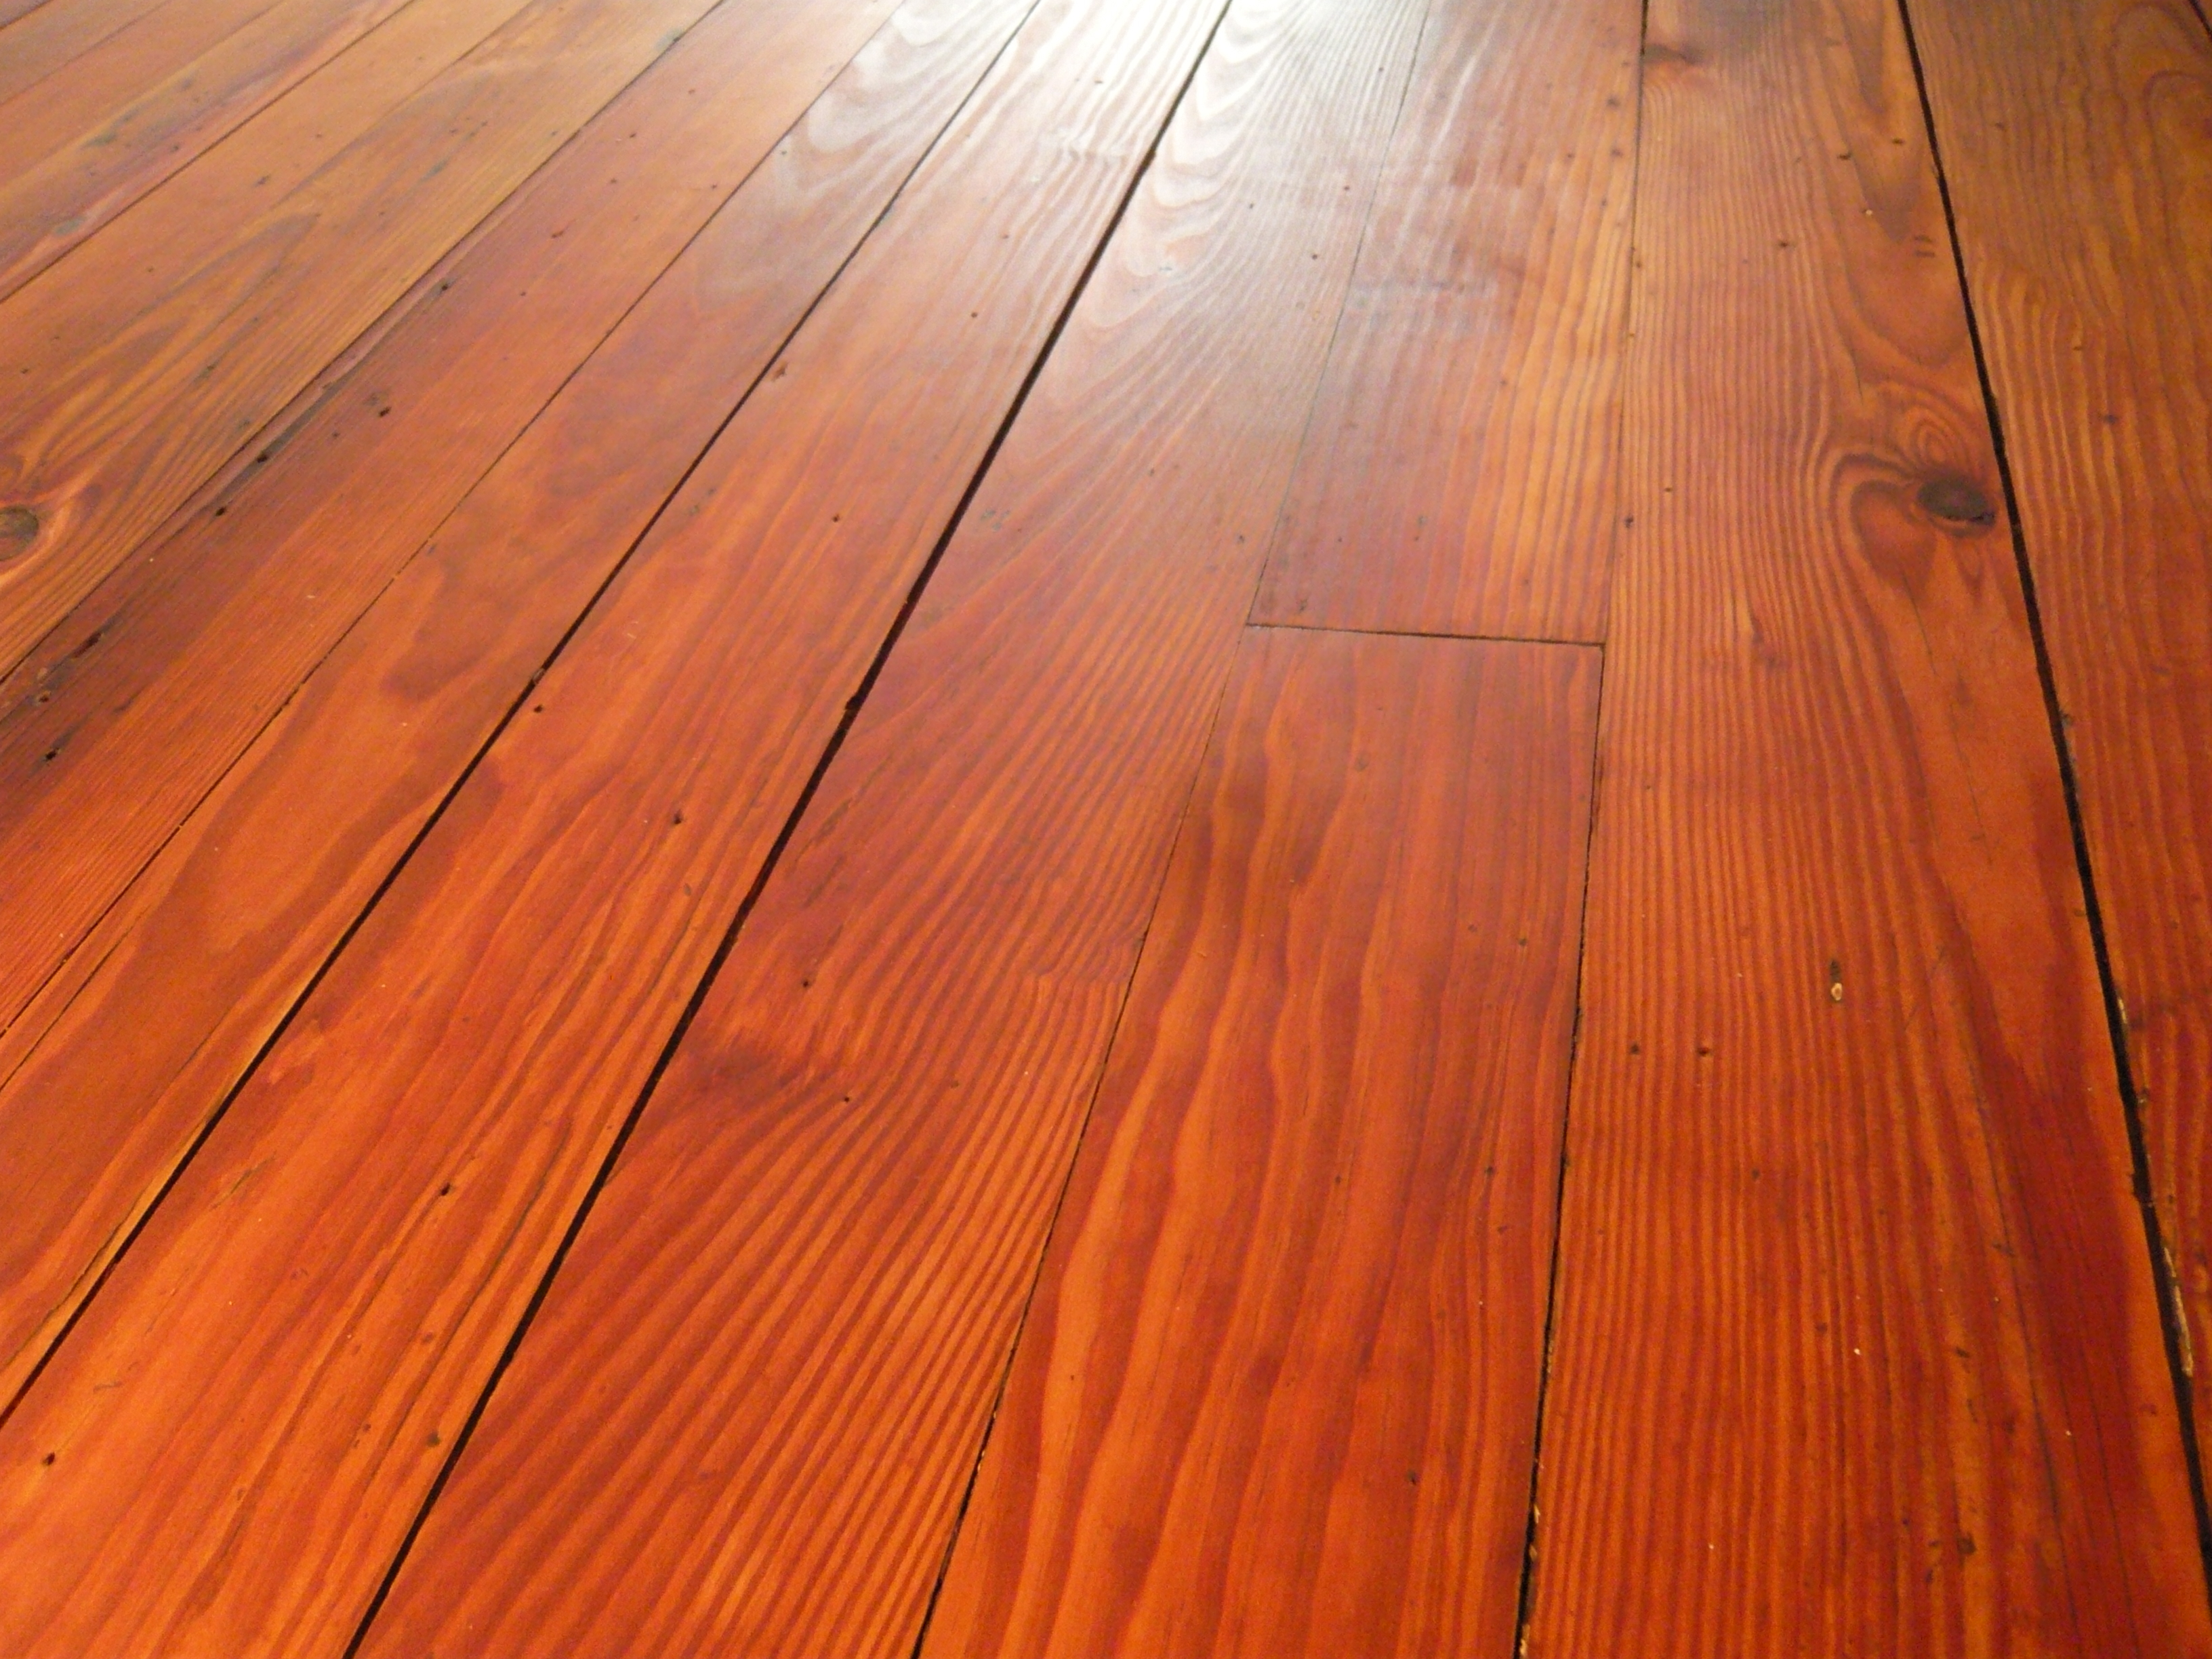 The colors in the wood are just amazing.  They range from bright yellow to dark red.  Very warm!